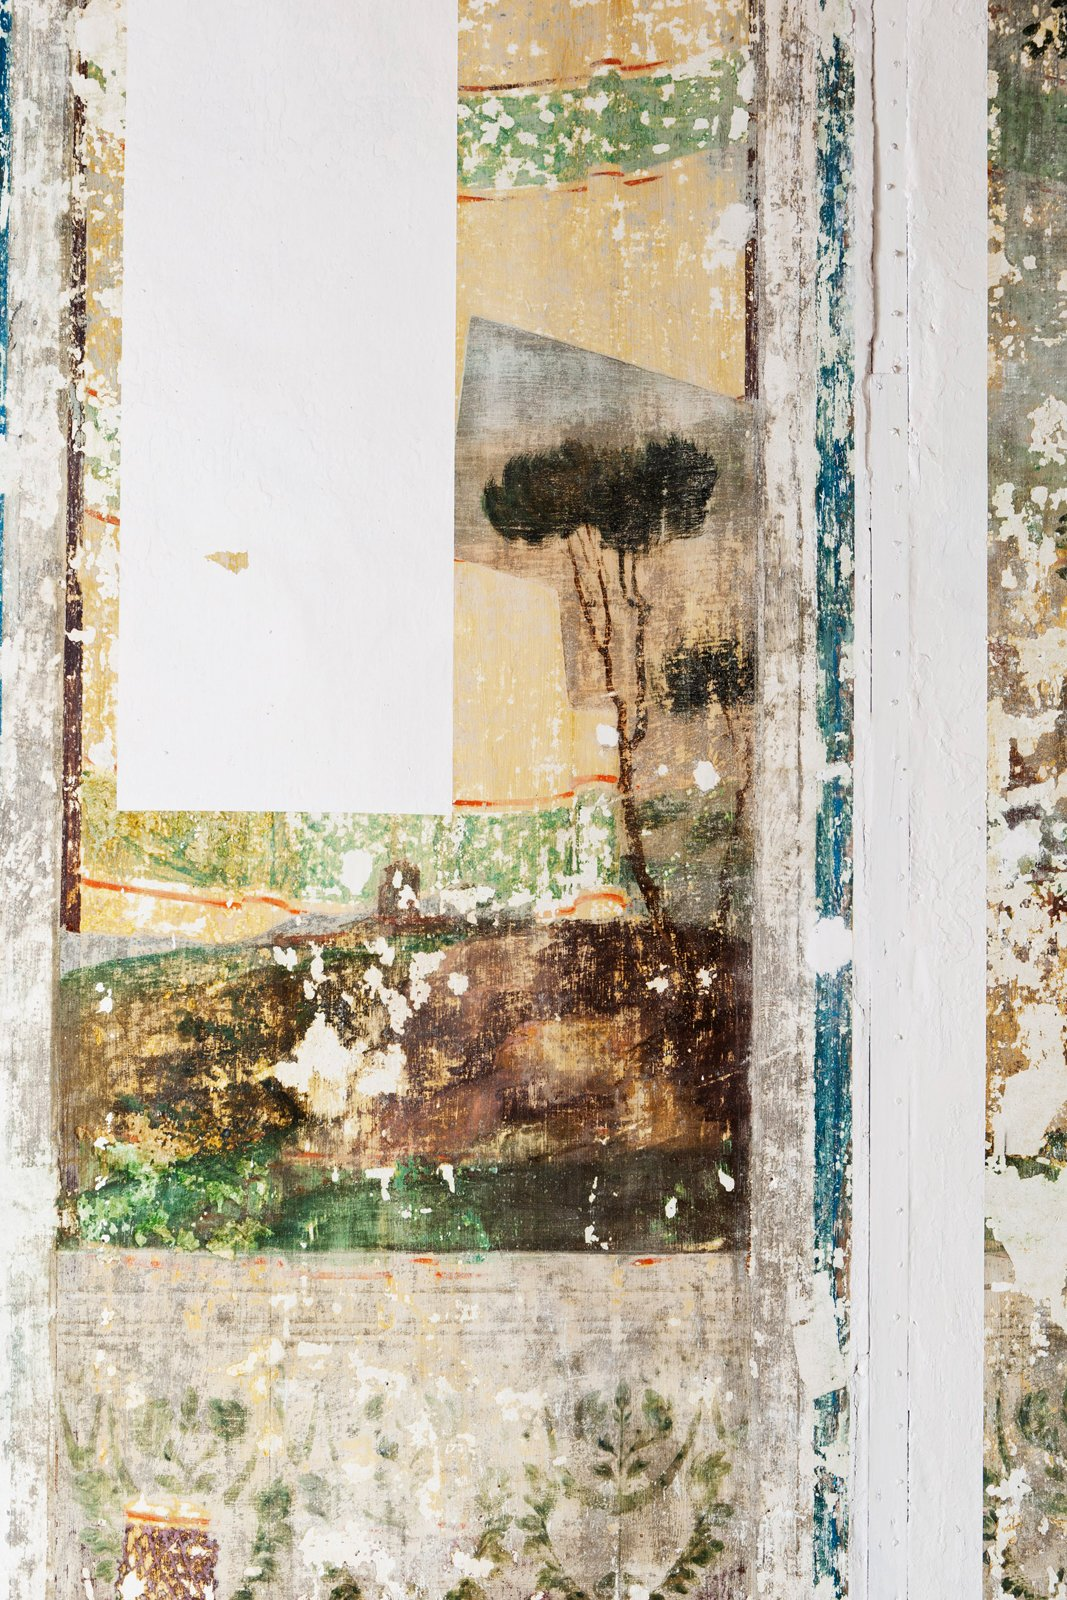 A detail of a wall illustrates Benedetta's eye for pattern and texture.